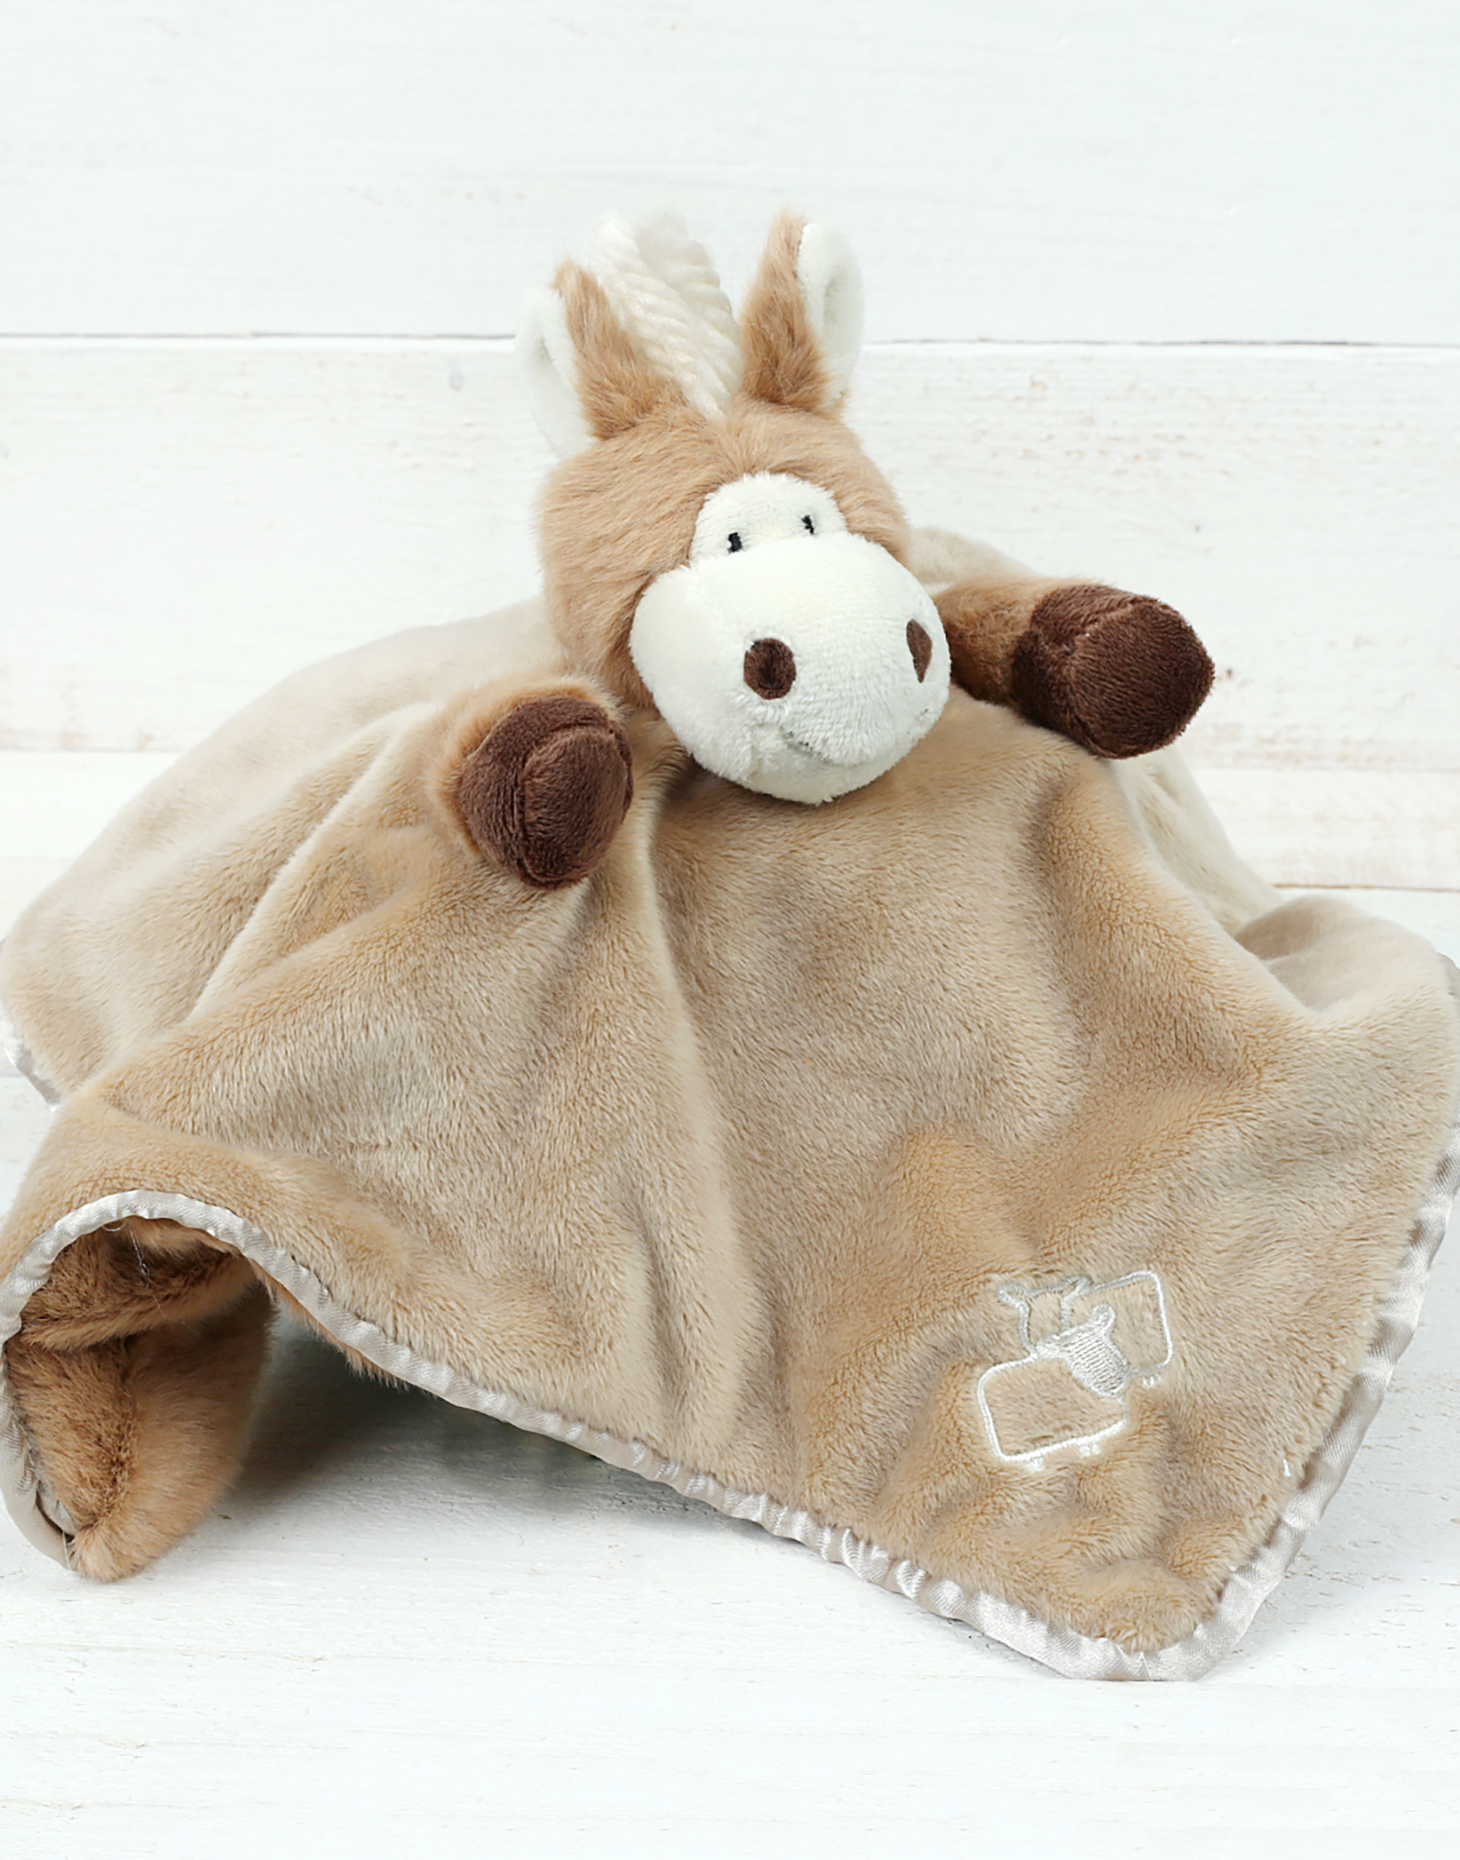 HAFFIE PONY SOOTHER/FINGER PUPPET JOMANDA